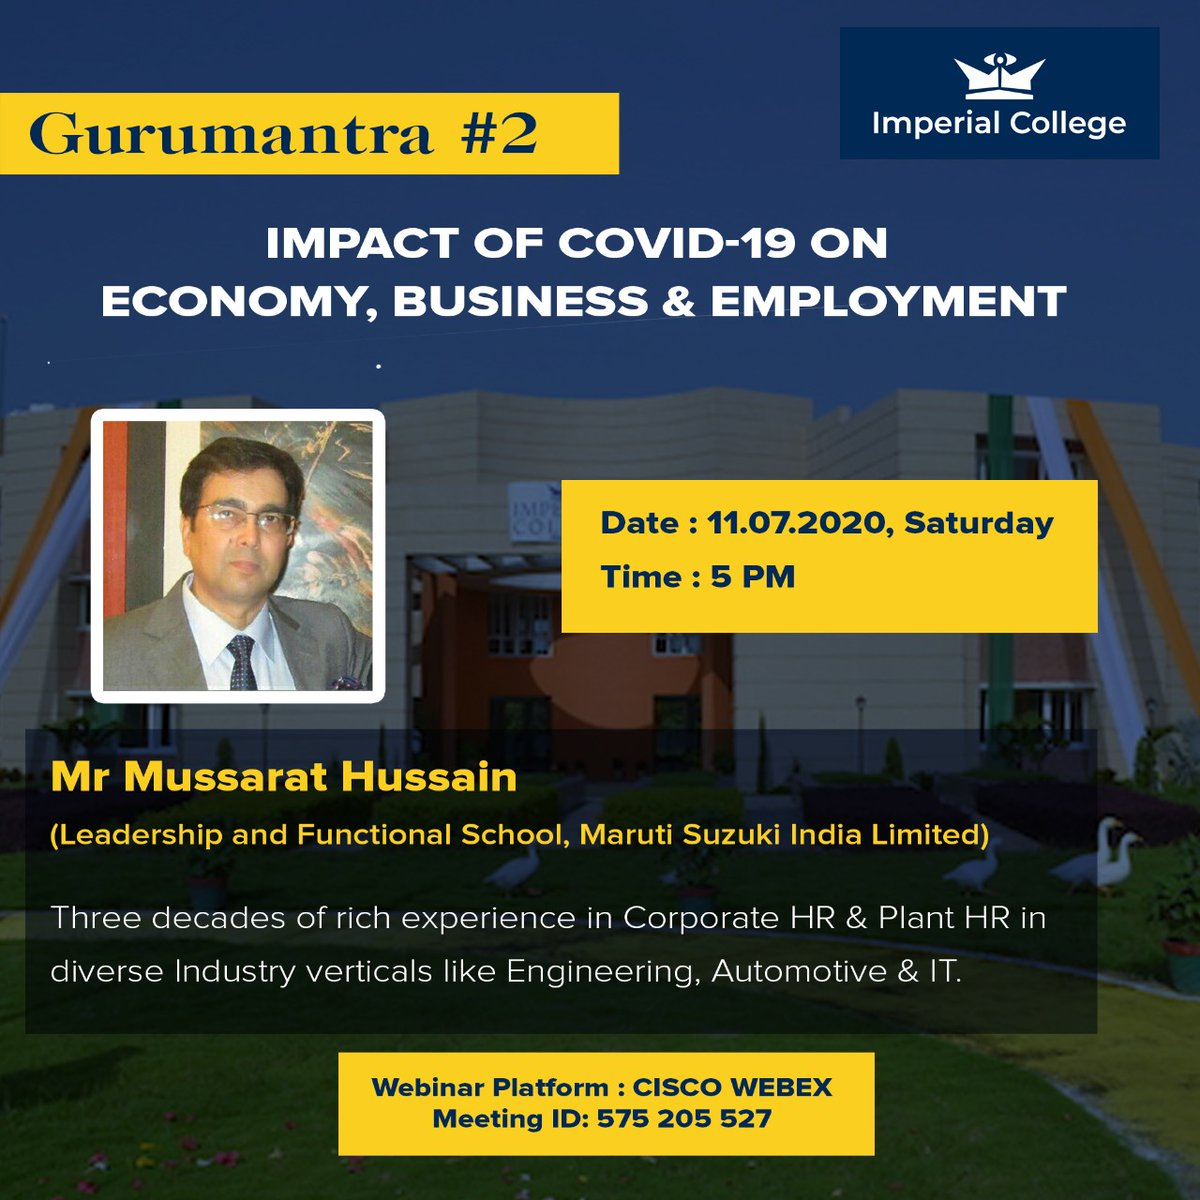 We are extremely glad to announce another exciting #Gurumantra session by, Mr Mussarat Hussain, who will be addressing some important industry insights and will help us understand the economical impact of the #COVID__19 crisis. #WeAreImperial #education #economy #industryexpertpic.twitter.com/tXVCzDYeTb